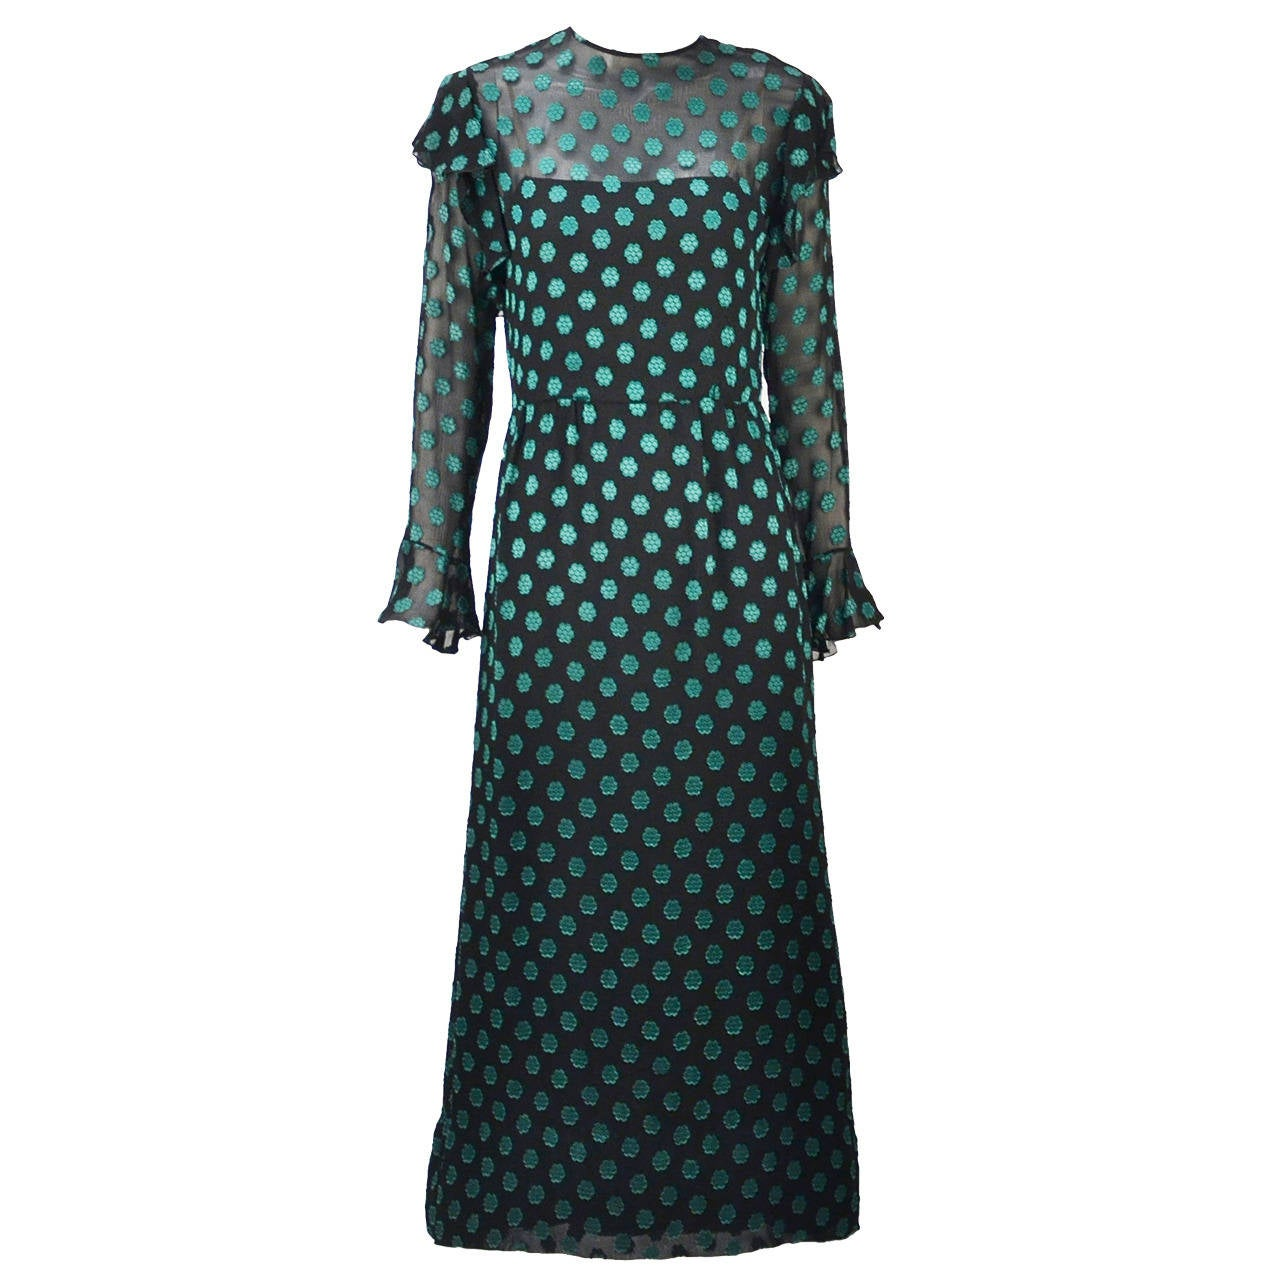 1980s Christian Dior Green Dress